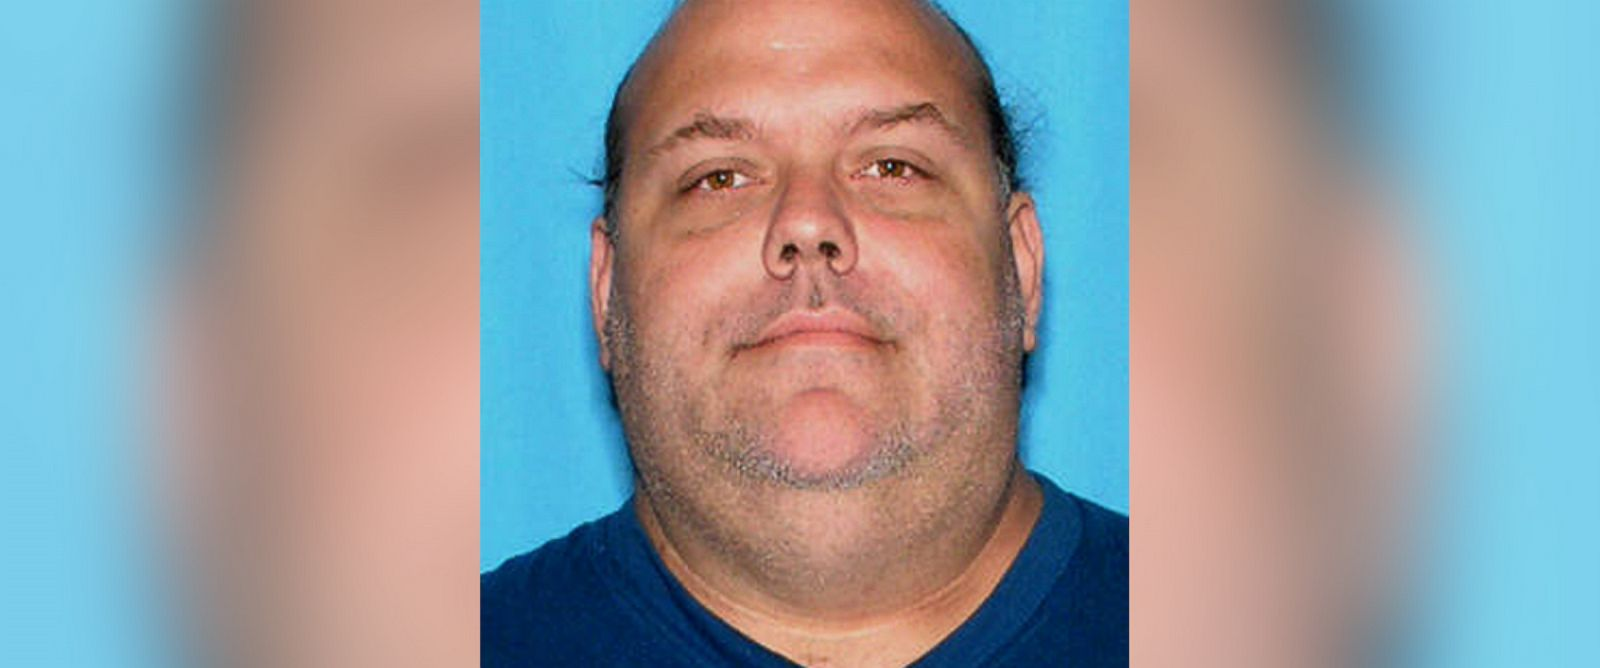 PHOTO: This image provided by the Florida Department of Law Enforcement shows an undated booking photo of Timothy Poole. Poole is listed on a Florida Department of Law Enforcement website as a sexual predator.